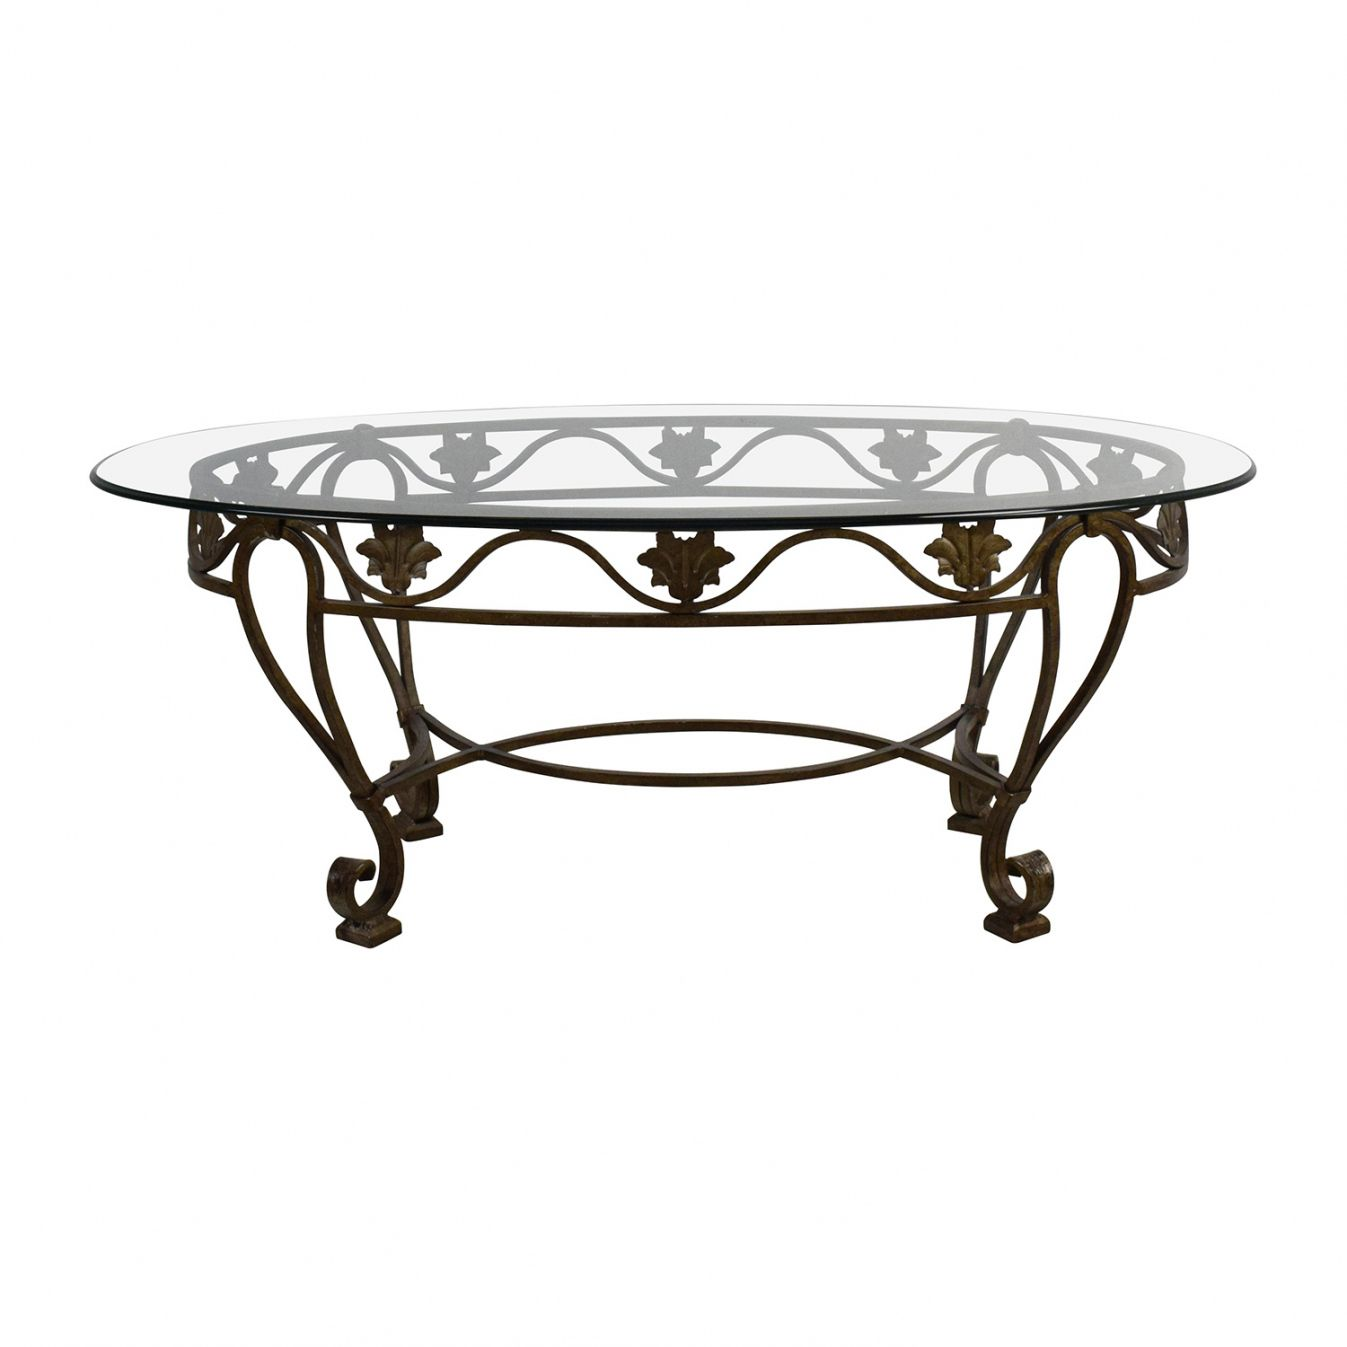 Cast Iron Coffee Table With Glass Top Modern Italian Furniture Check More At Http Www Nikkitsfun Com Cast Iron